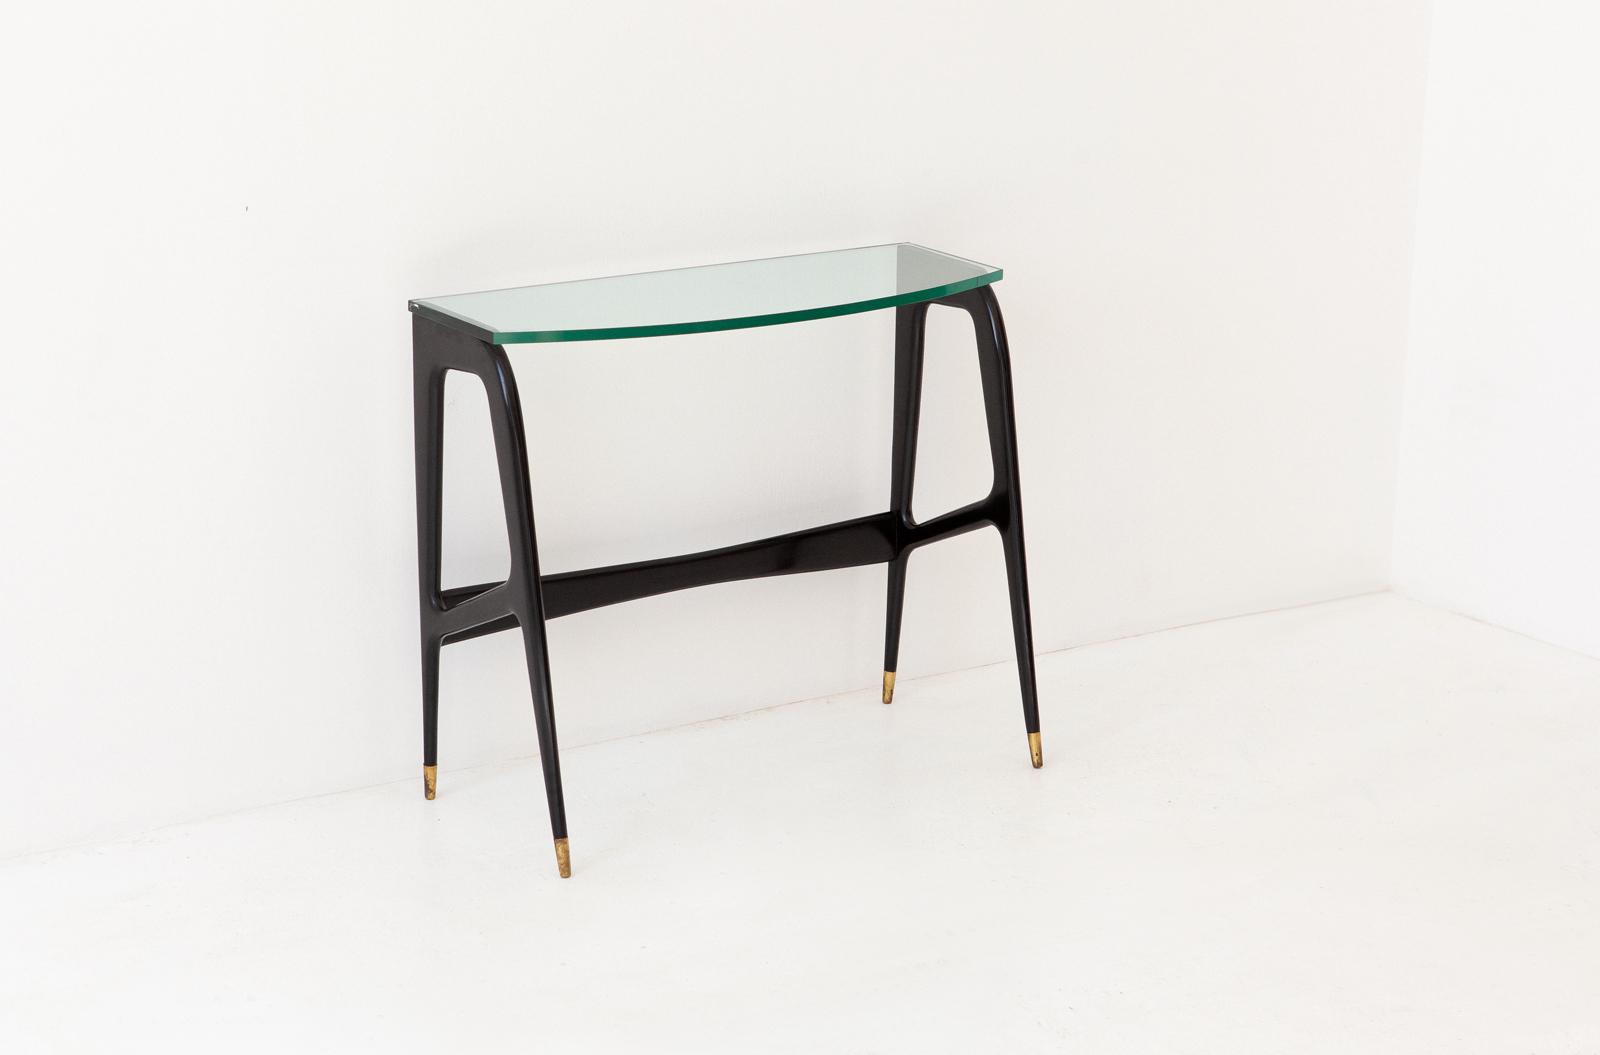 1950s-italian-black-laquered-wood-brass-glass-console-table-10-OF87